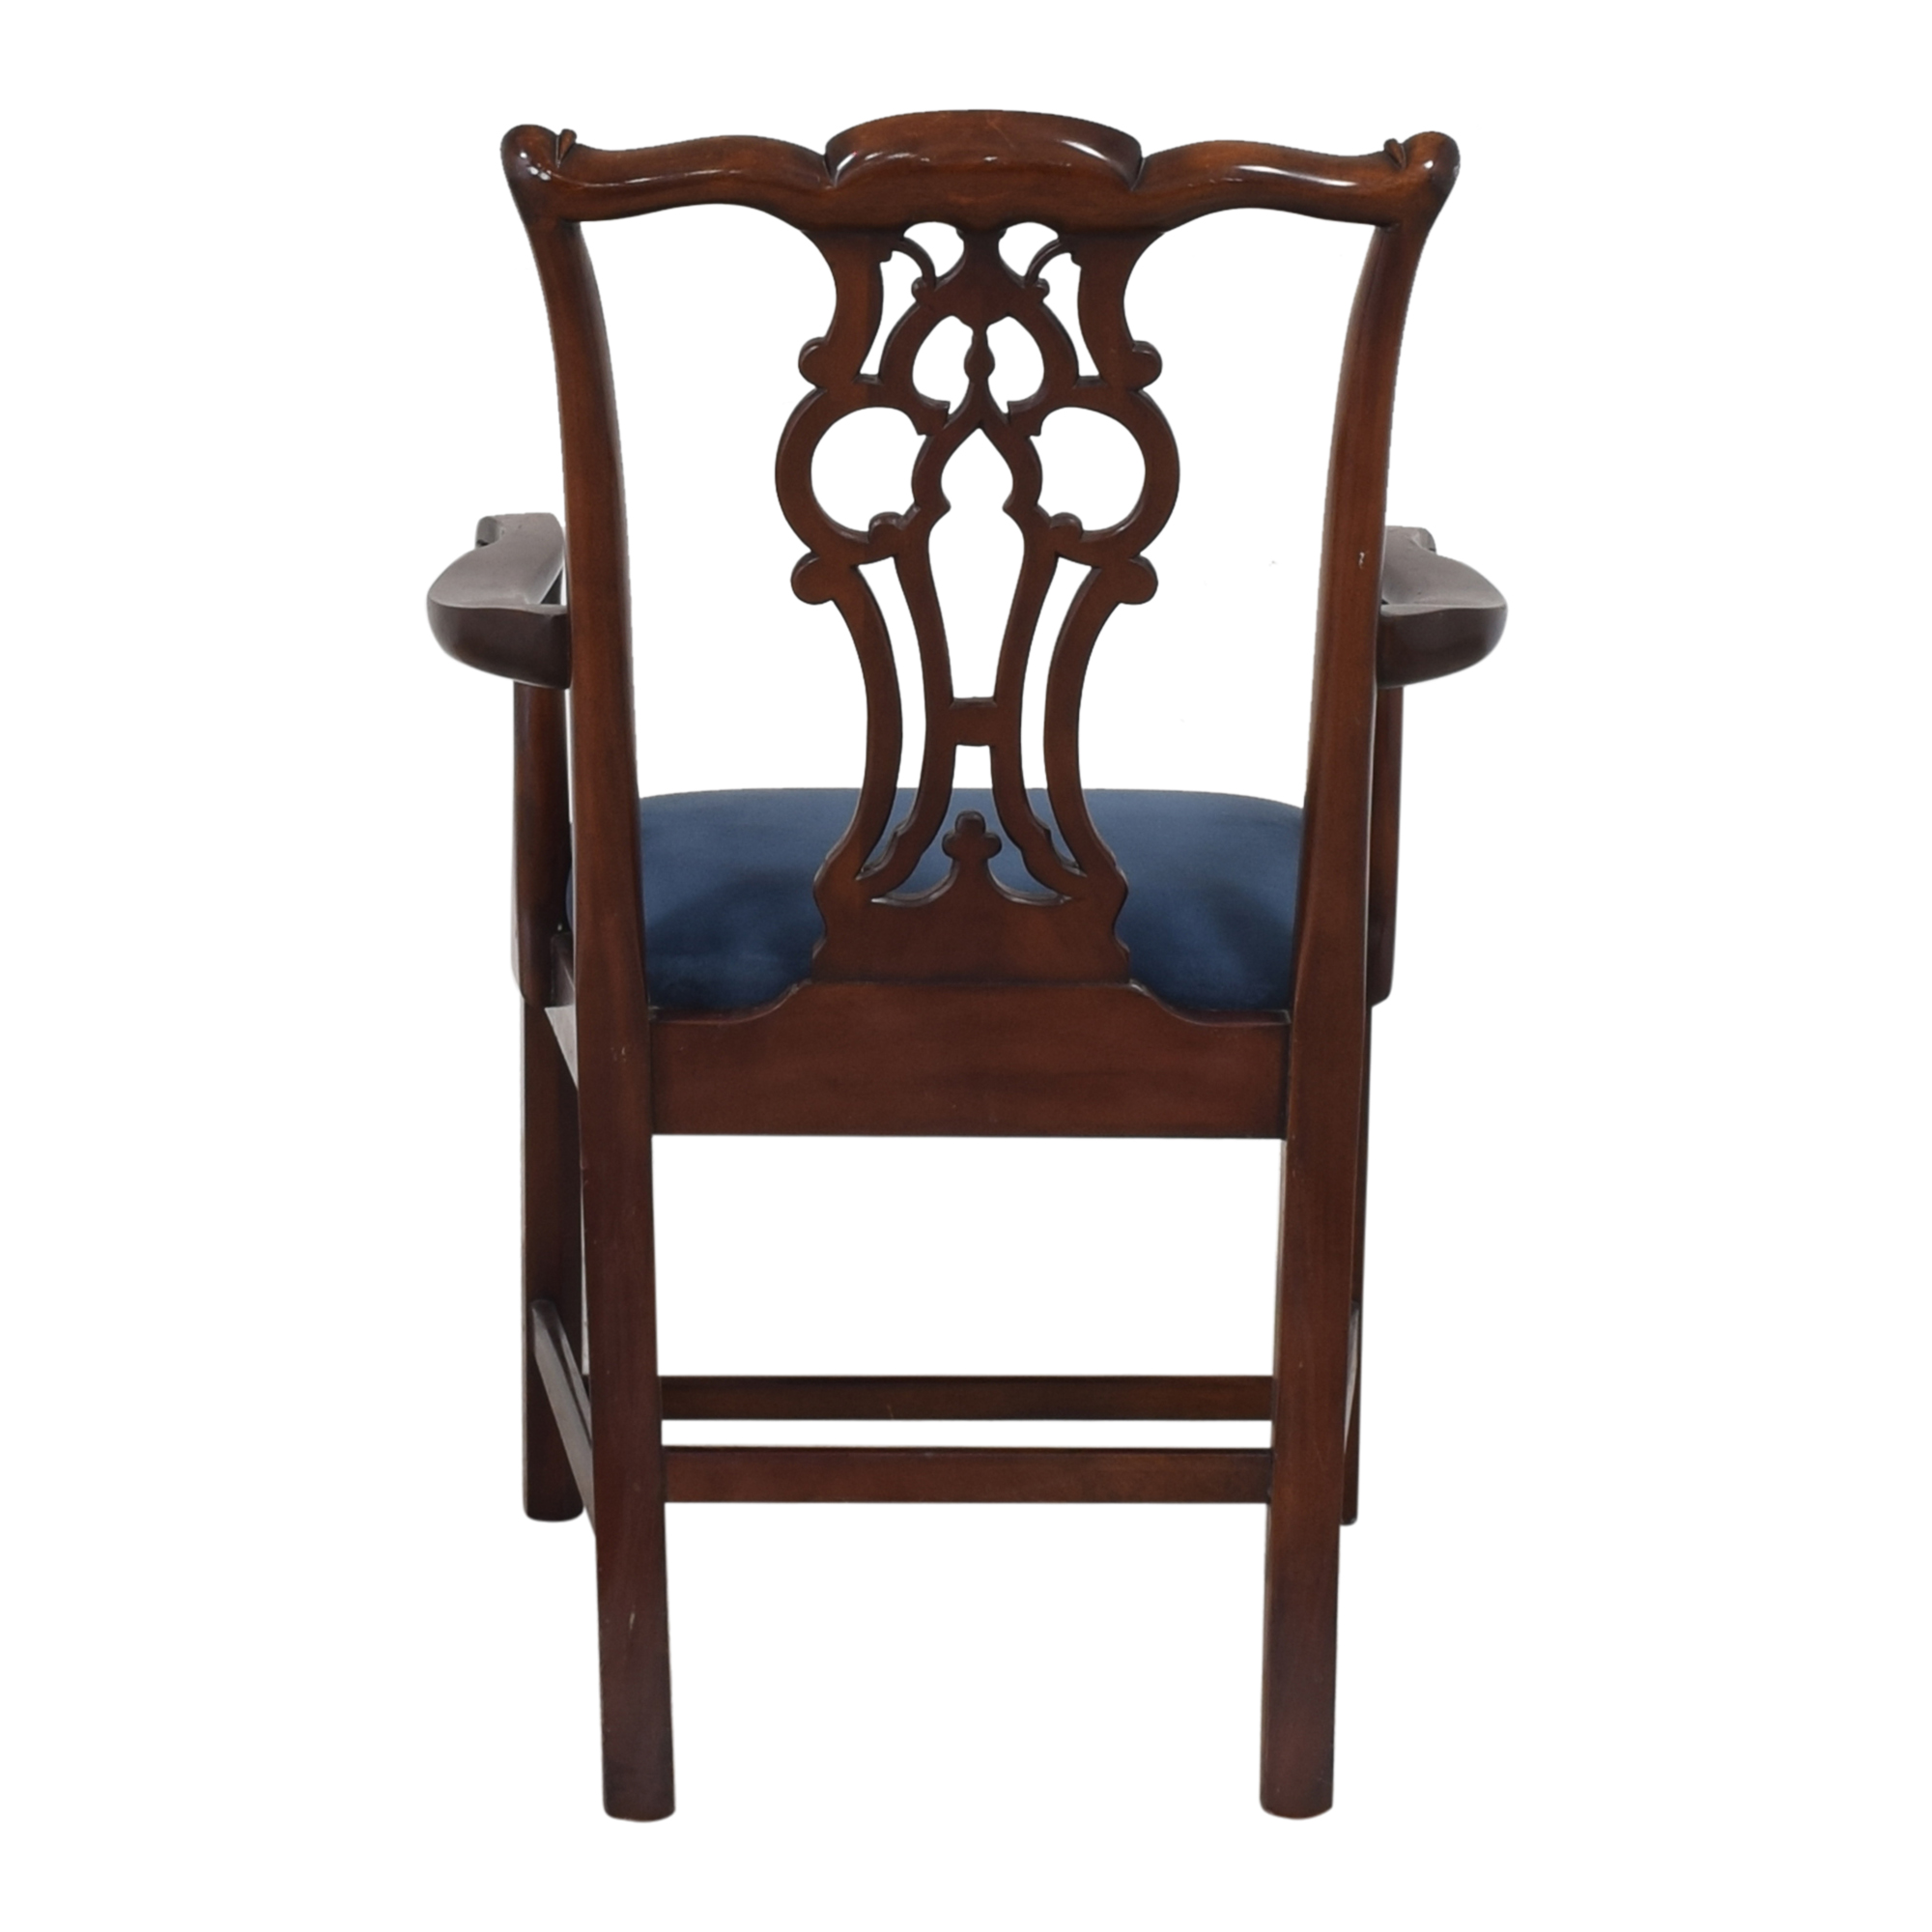 Maitland-Smith Maitland-Smith Chippendale Dining Arm Chair pa